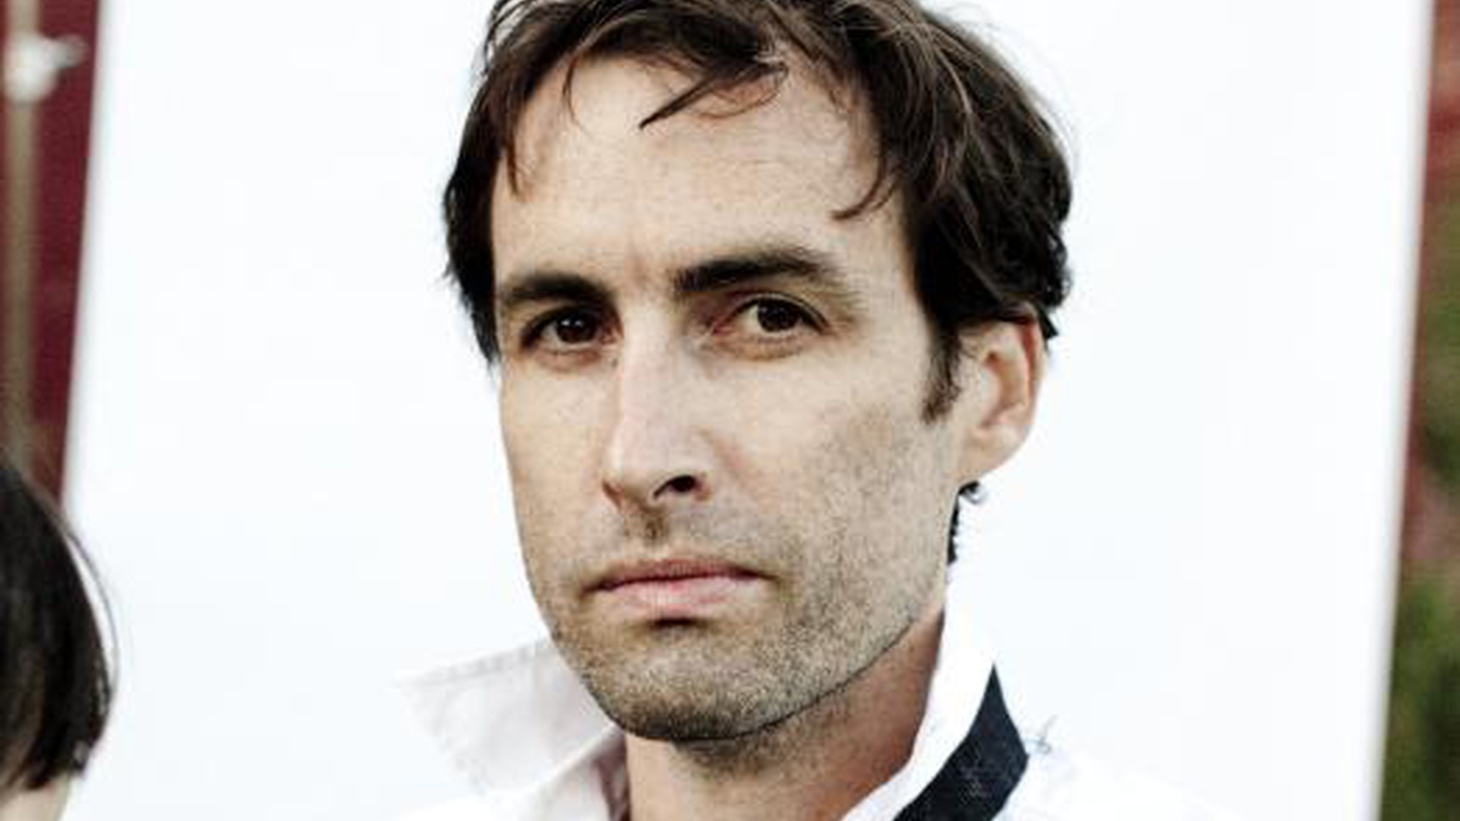 Noted whistler and multi-instrumentalist Andrew Bird soaks in all sorts of sounds to create his classically-minded pop songs.